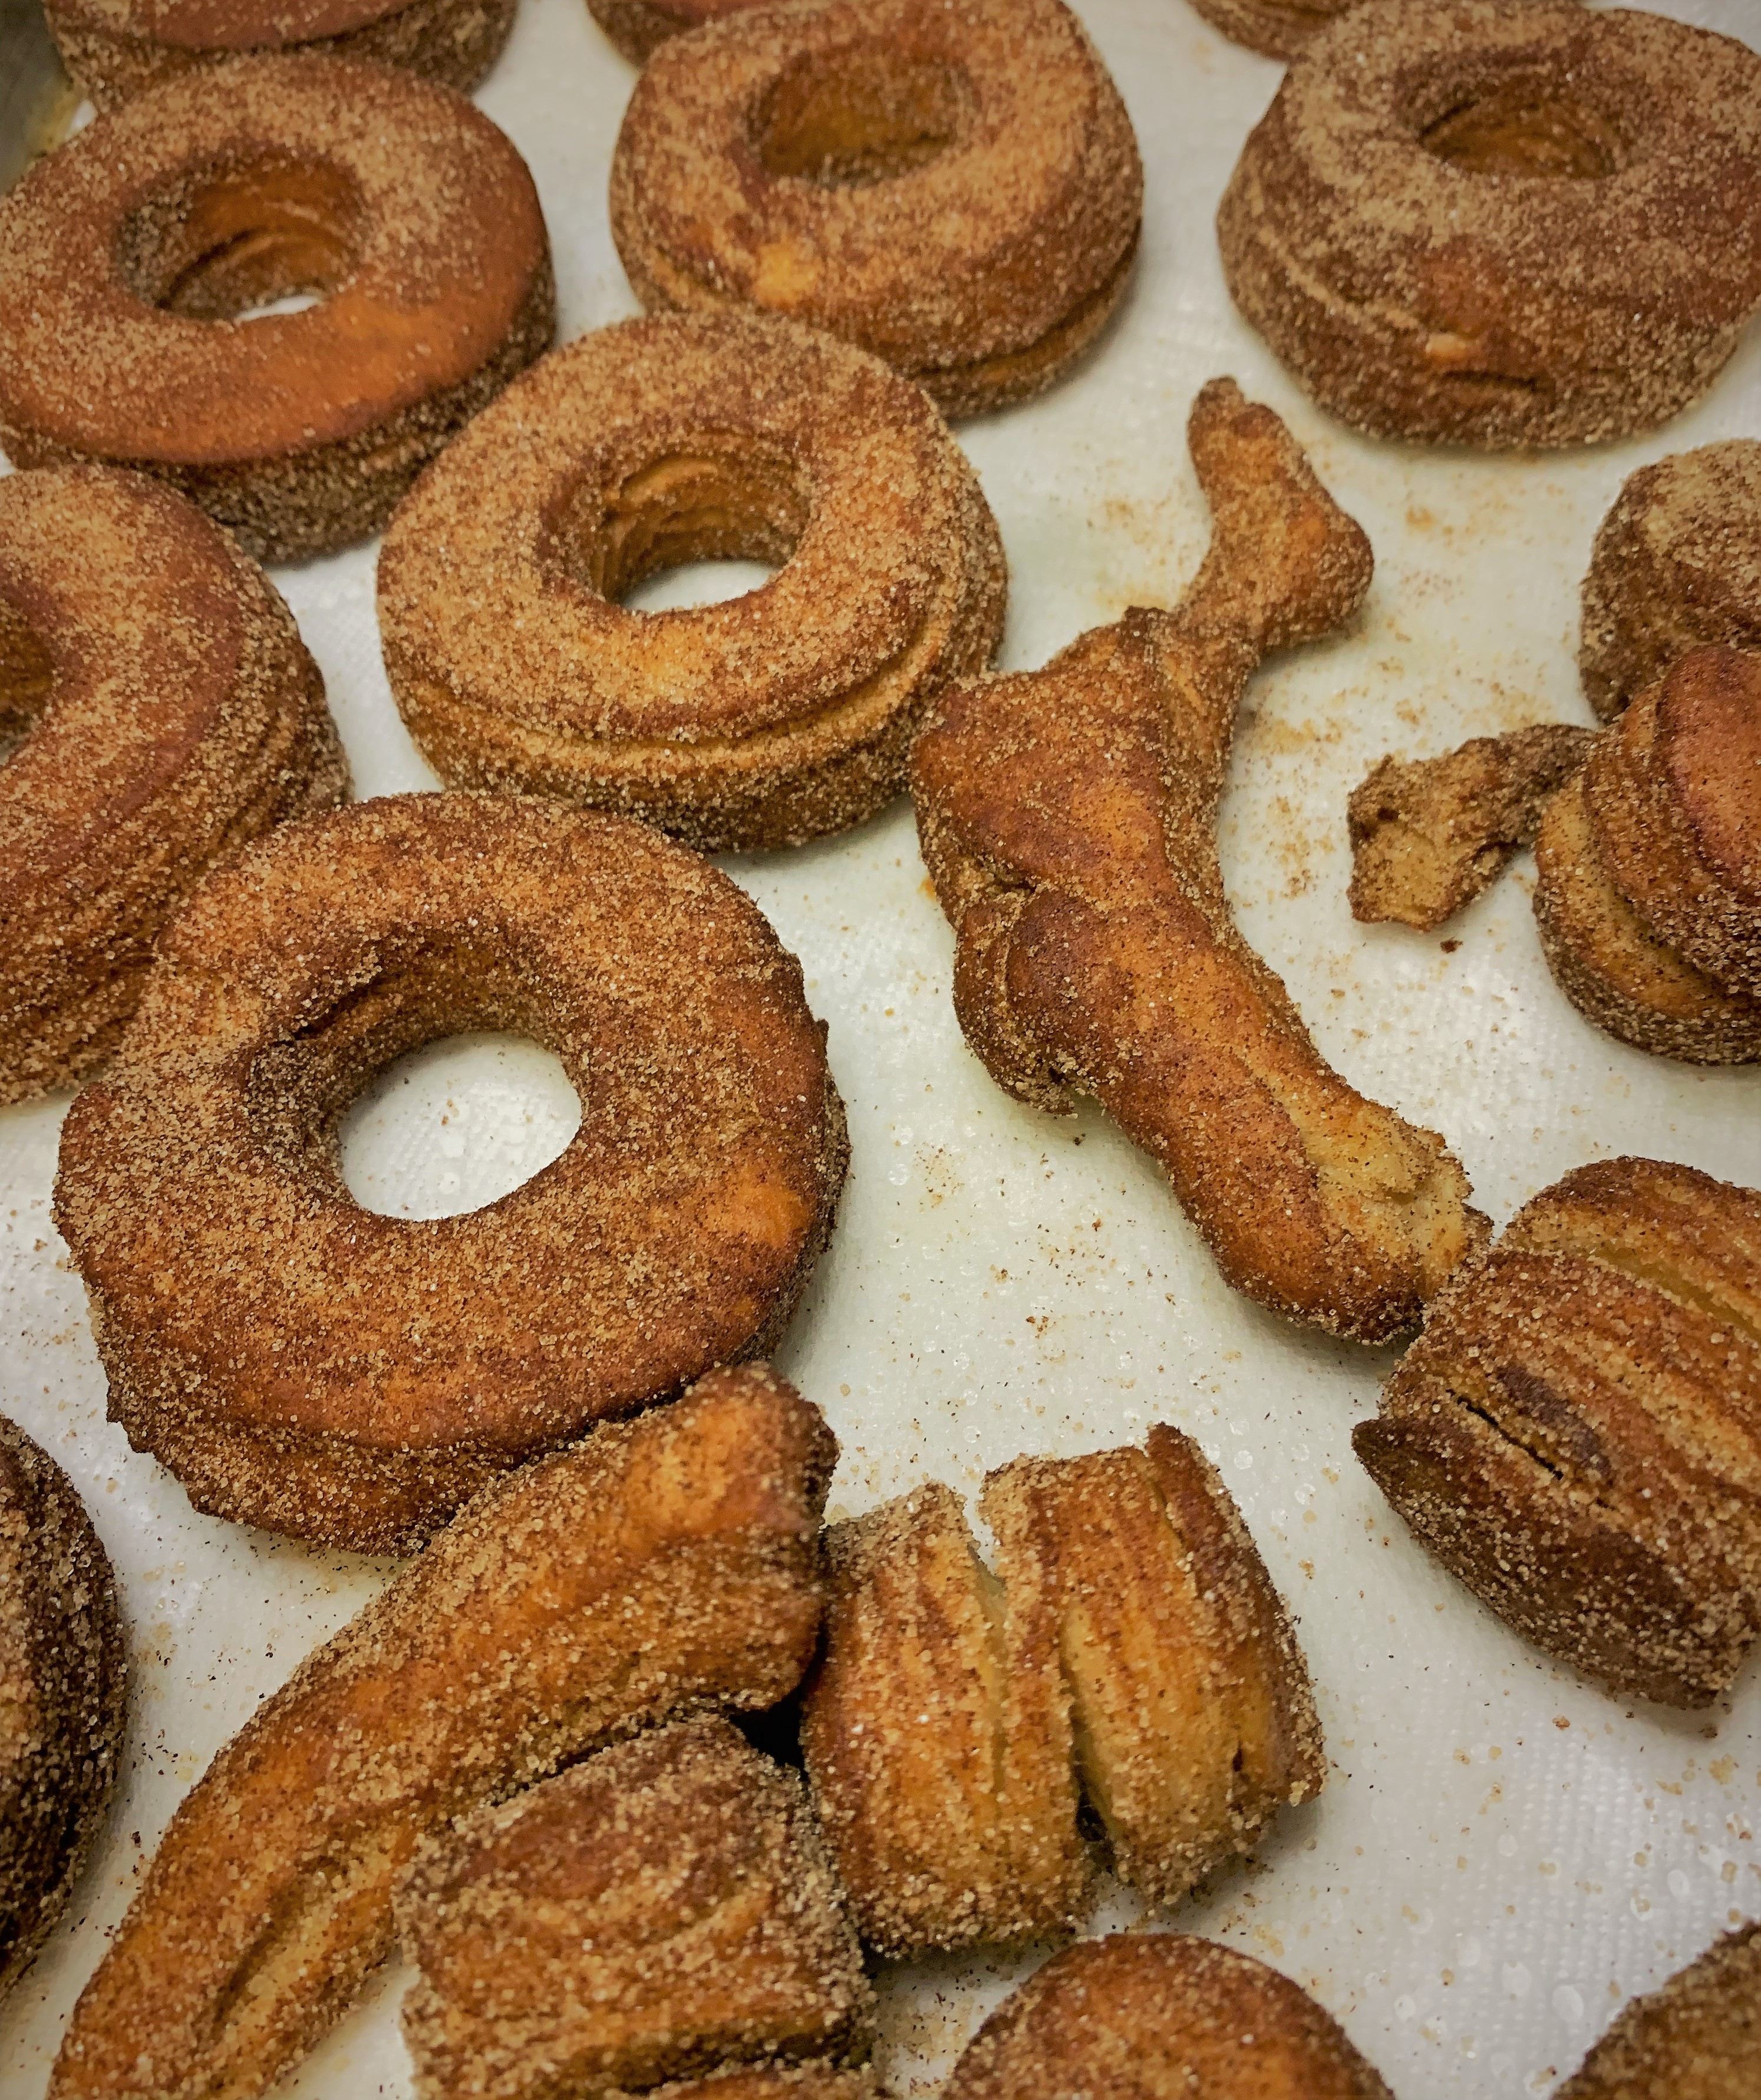 Our cooked and coated Croissant Doughnuts